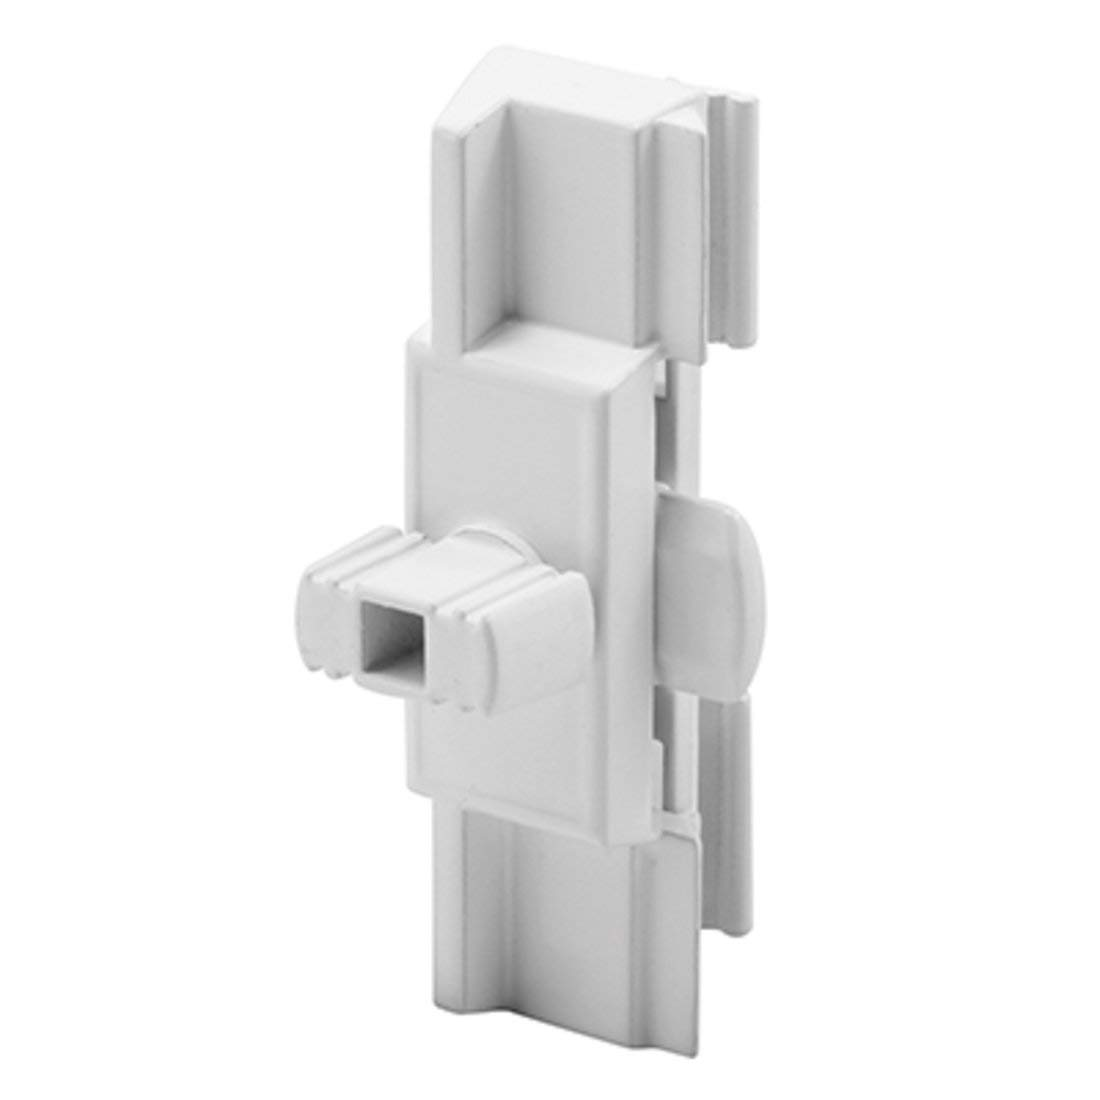 C.R. LAURENCE F2650 CRL White Diecast Sliding Window Latch and Pull for Superior Windows